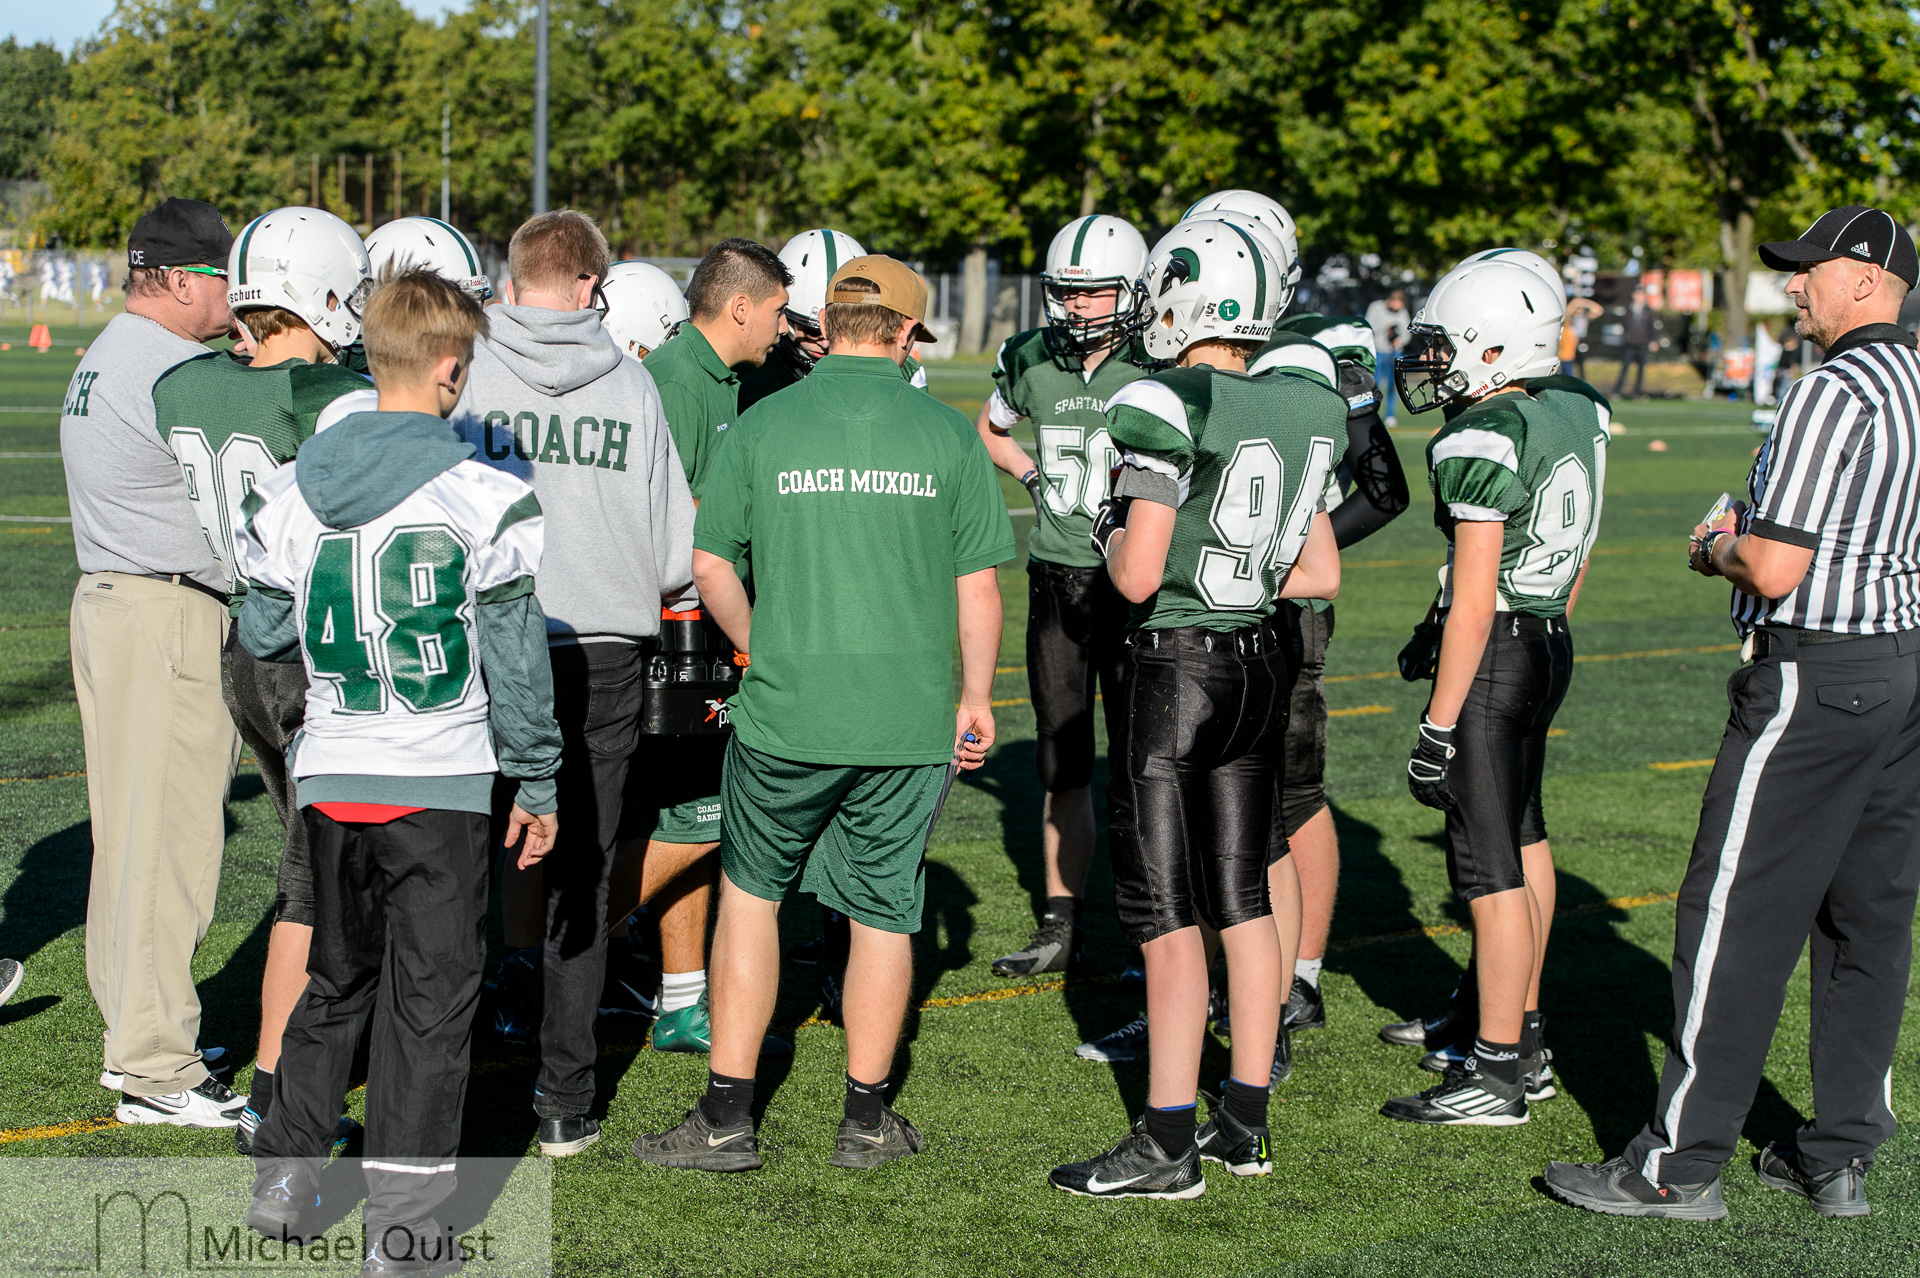 U16-RS-Bowl-2015-Ørestaden-Spartans-vs-Slagelse-Wolfpack-31